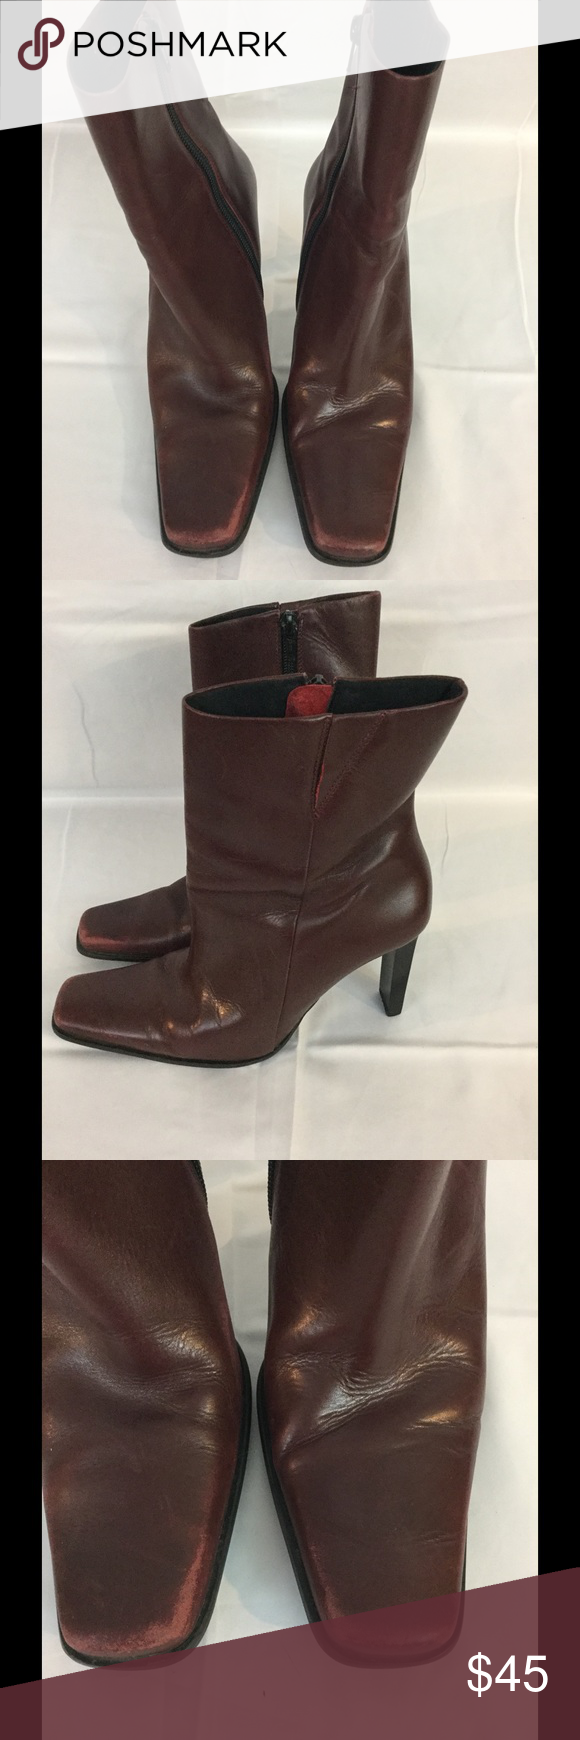 """BAKERS Burgundy Leather High Heel Ankle Boots BAKERS Burgundy Leather High Heel Ankle Boots w/ Side Zipper 6.5 Jenie  STYLE  These boots are classic leather style show sophistication.... There is a little wear on the top of the boots see pics..   Heel height 4""""  Color burgundy  Style Jenie  Maker Bakers Leather Zip up ankle boots  Still lot of life left in these boots.   If you have any questions please email me Bakers Shoes Heeled Boots"""